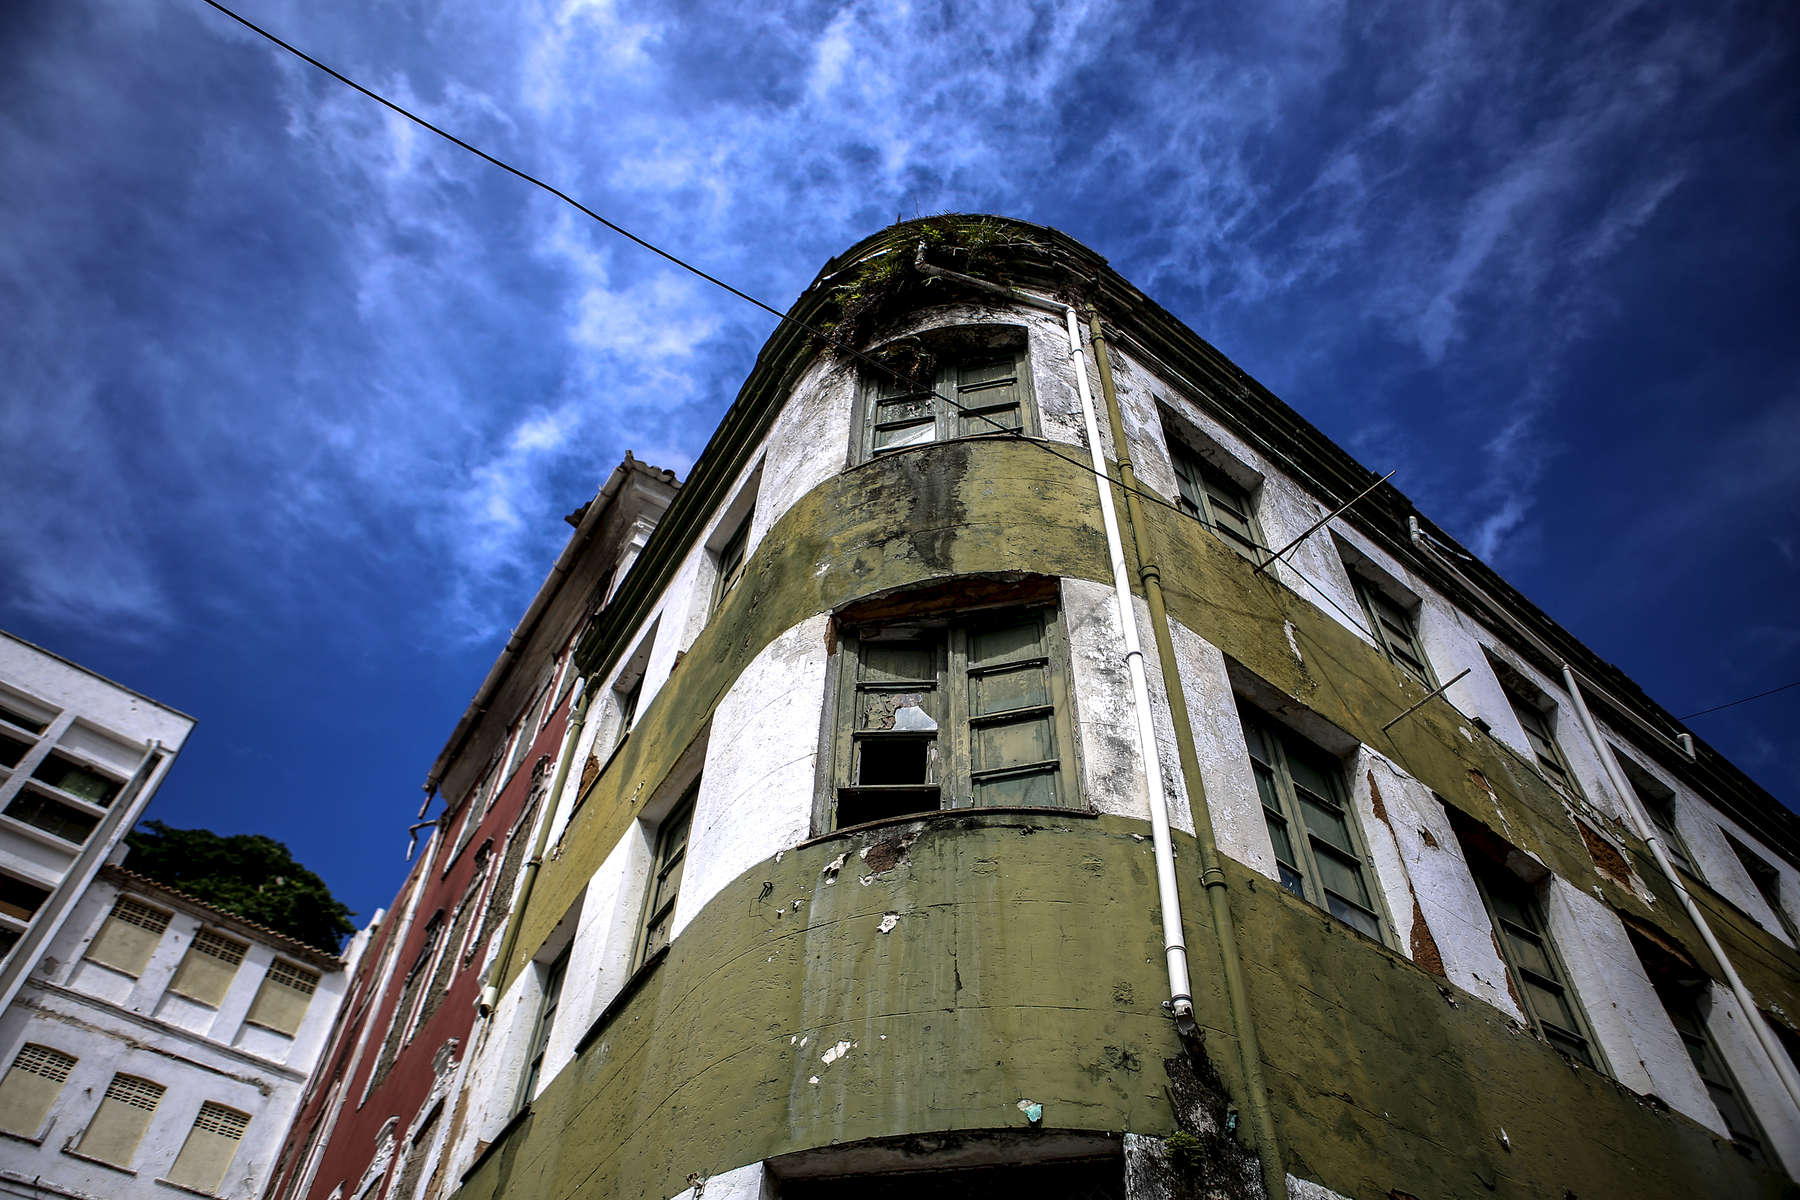 An abadoned historic building in Salvador.